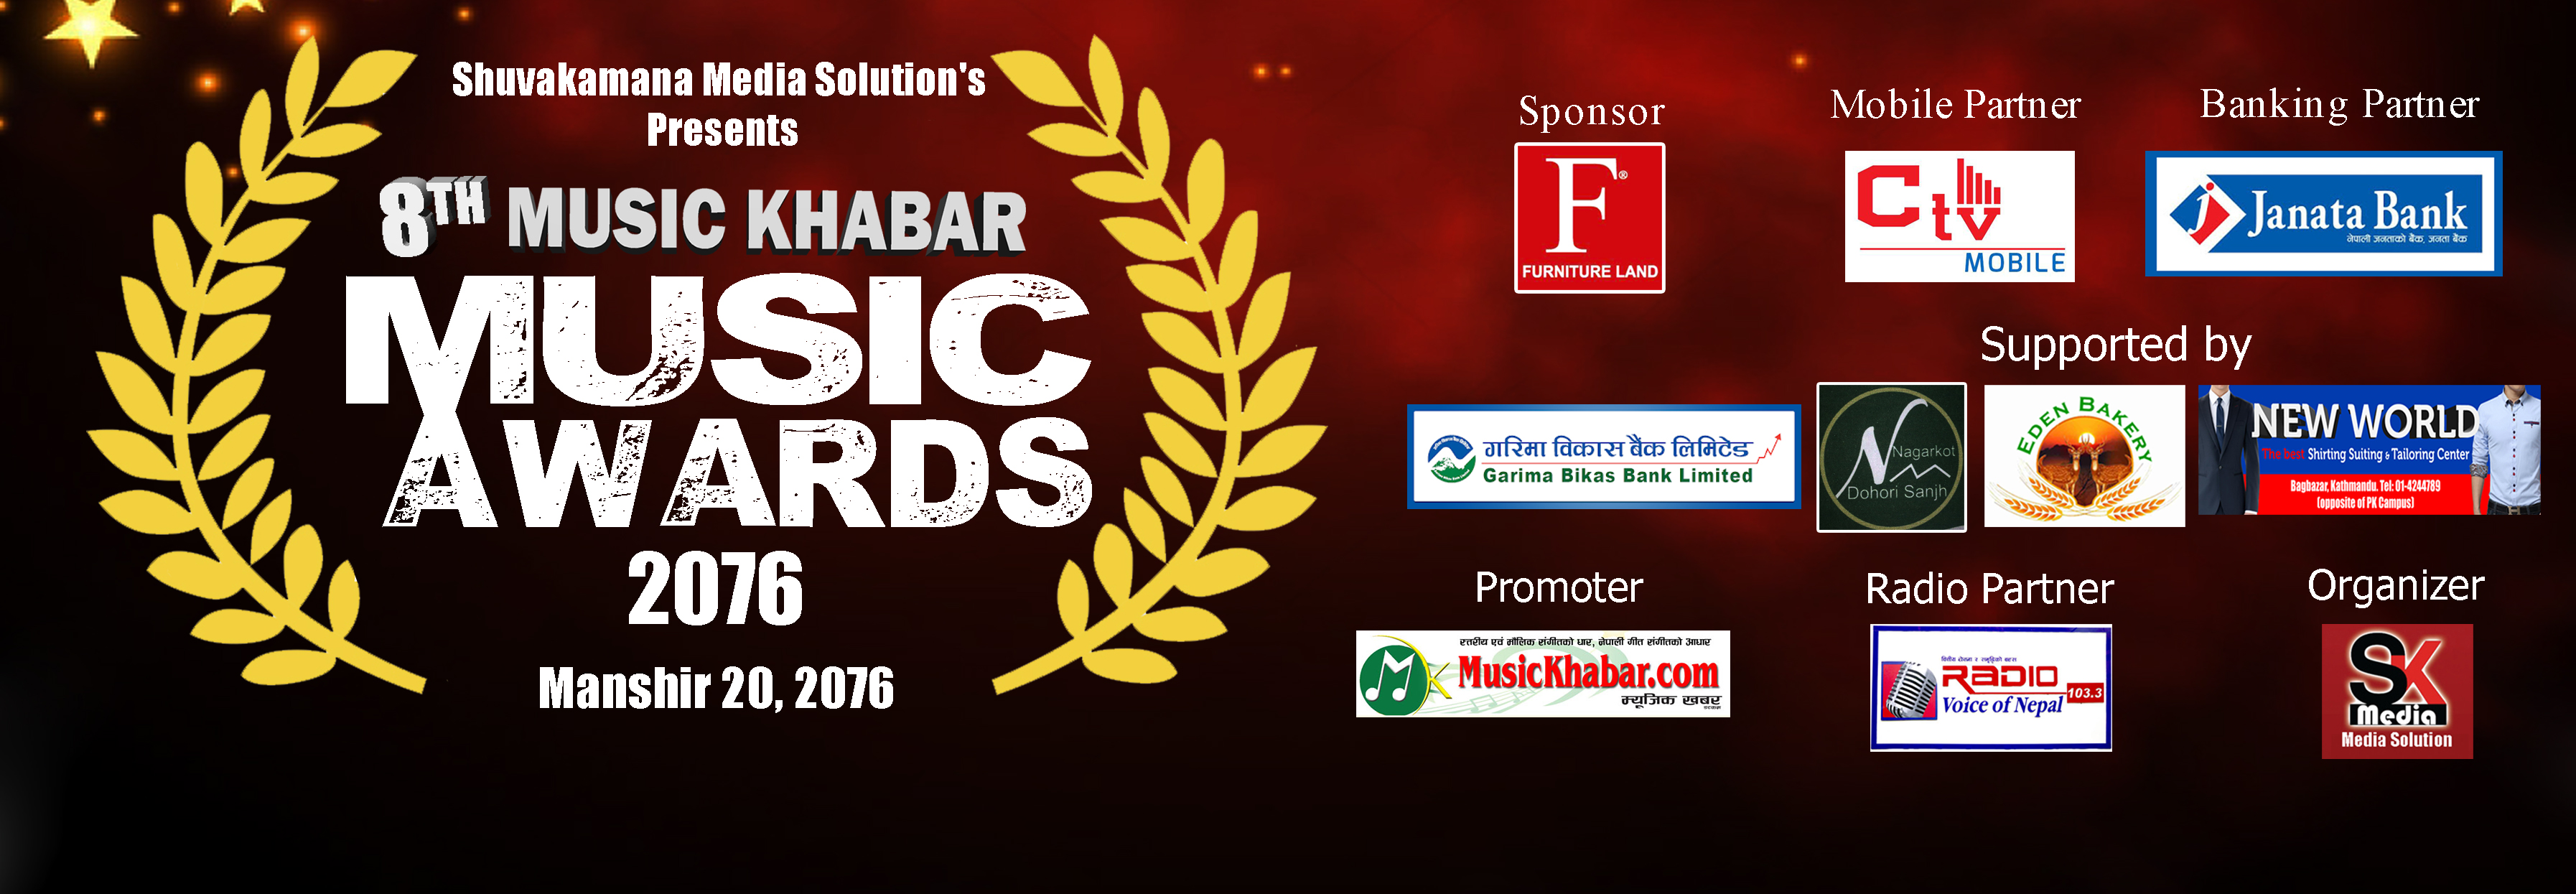 Music Khabar Music Awards